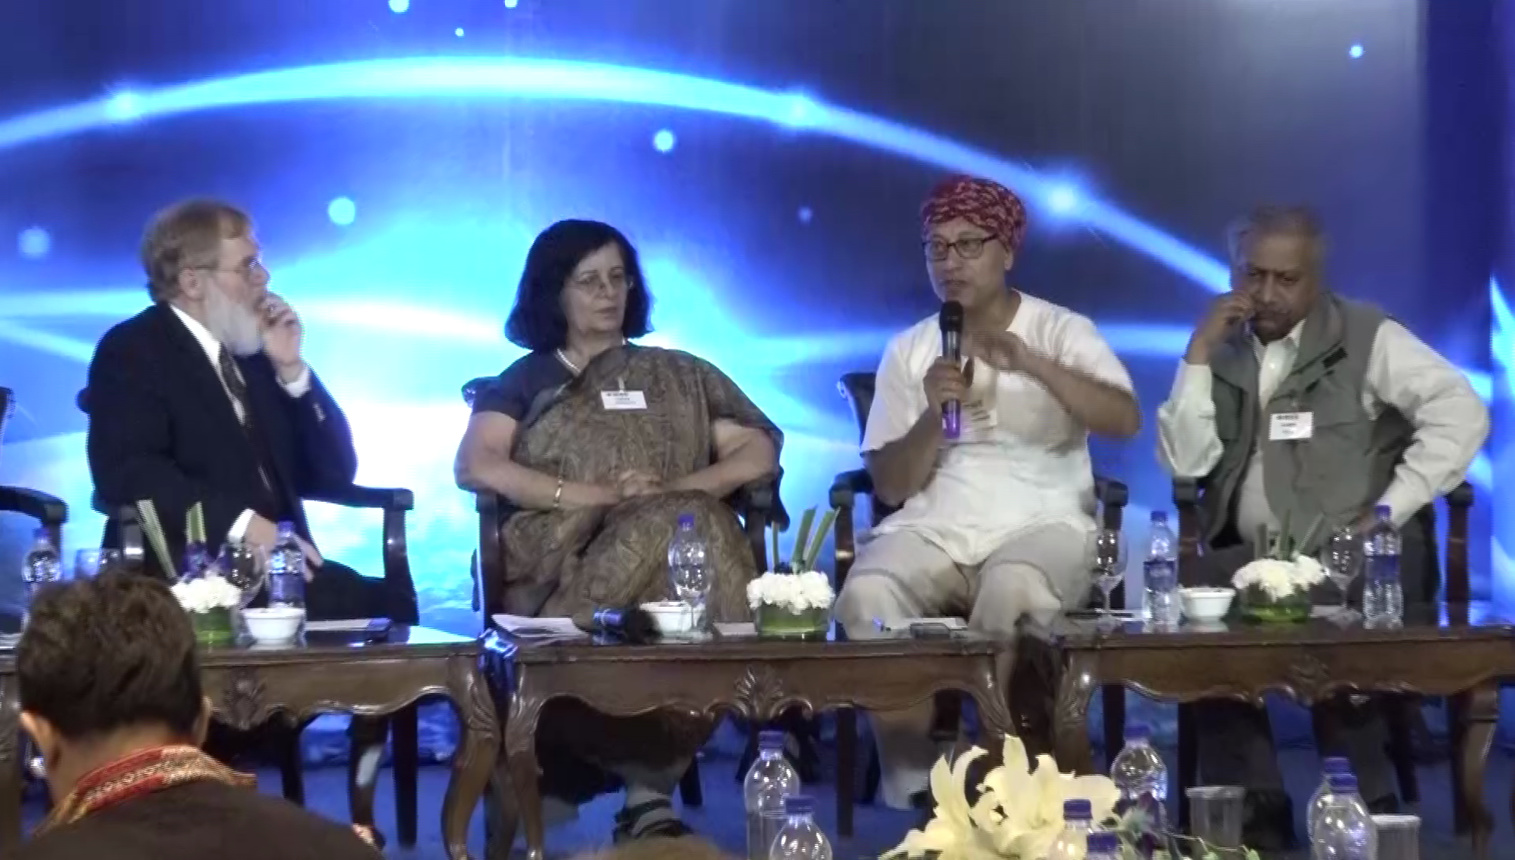 Panel Discussion - ETAP Delhi 2016